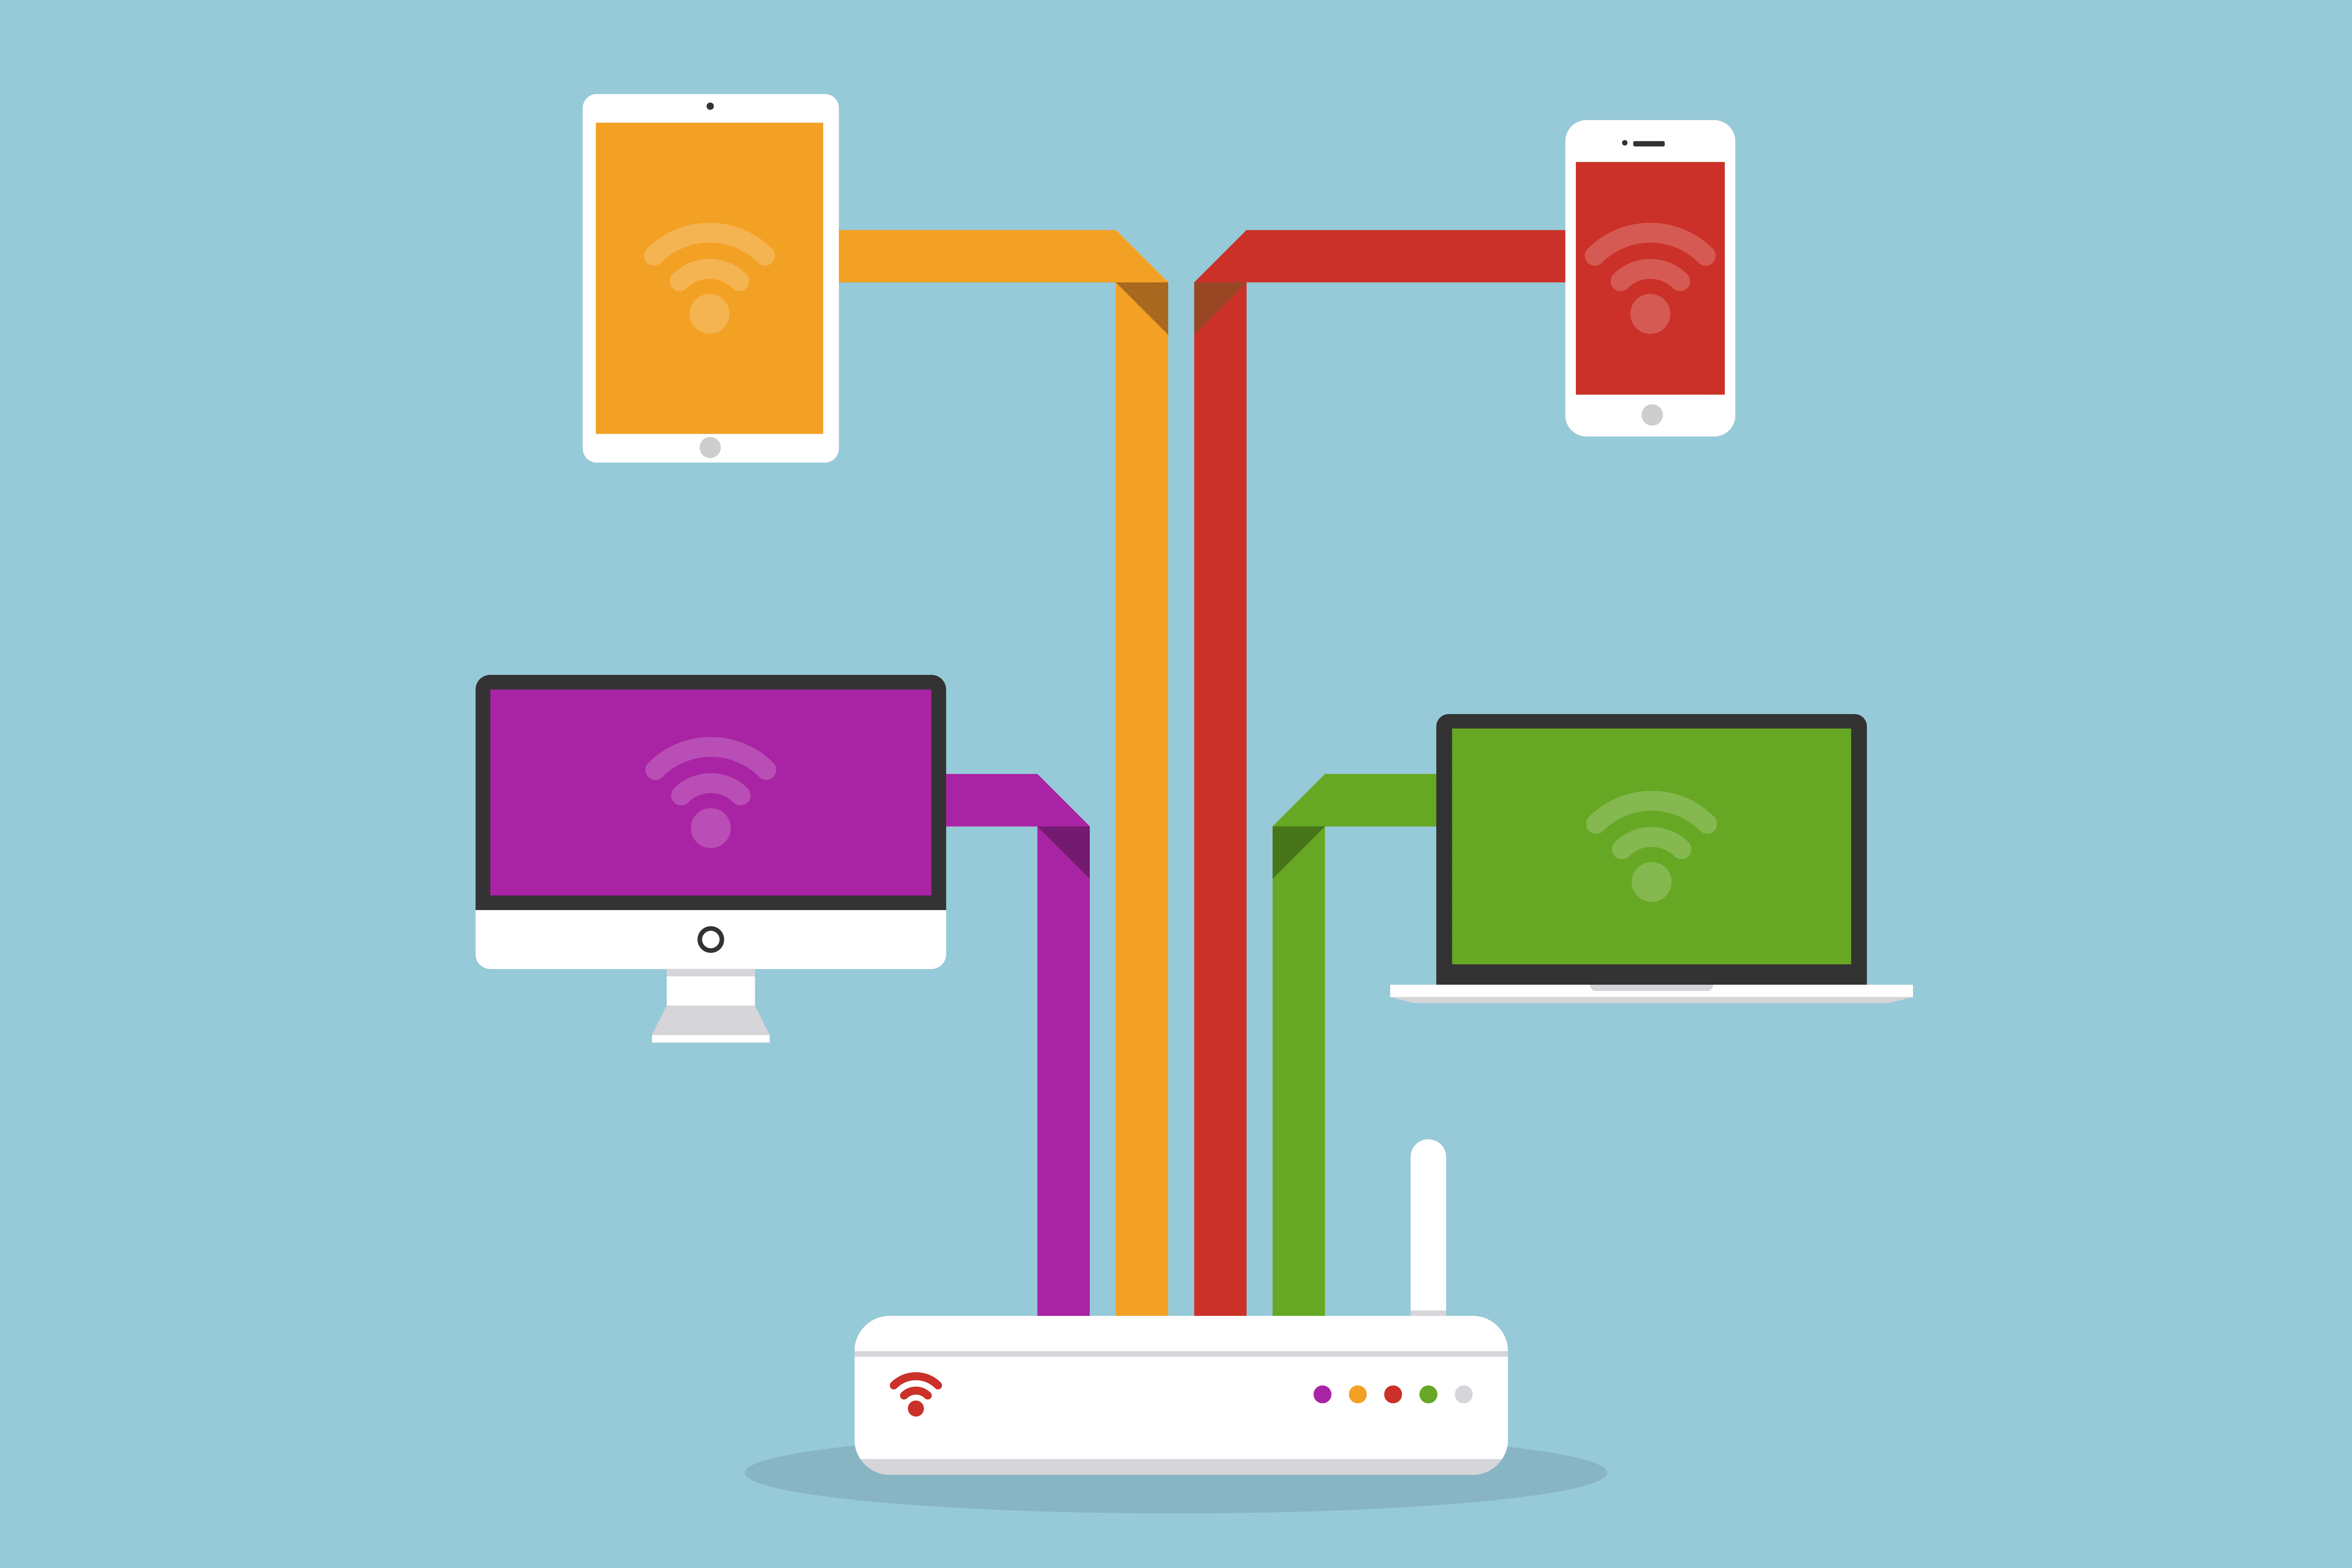 How to Set Up Networks for Digital Devices